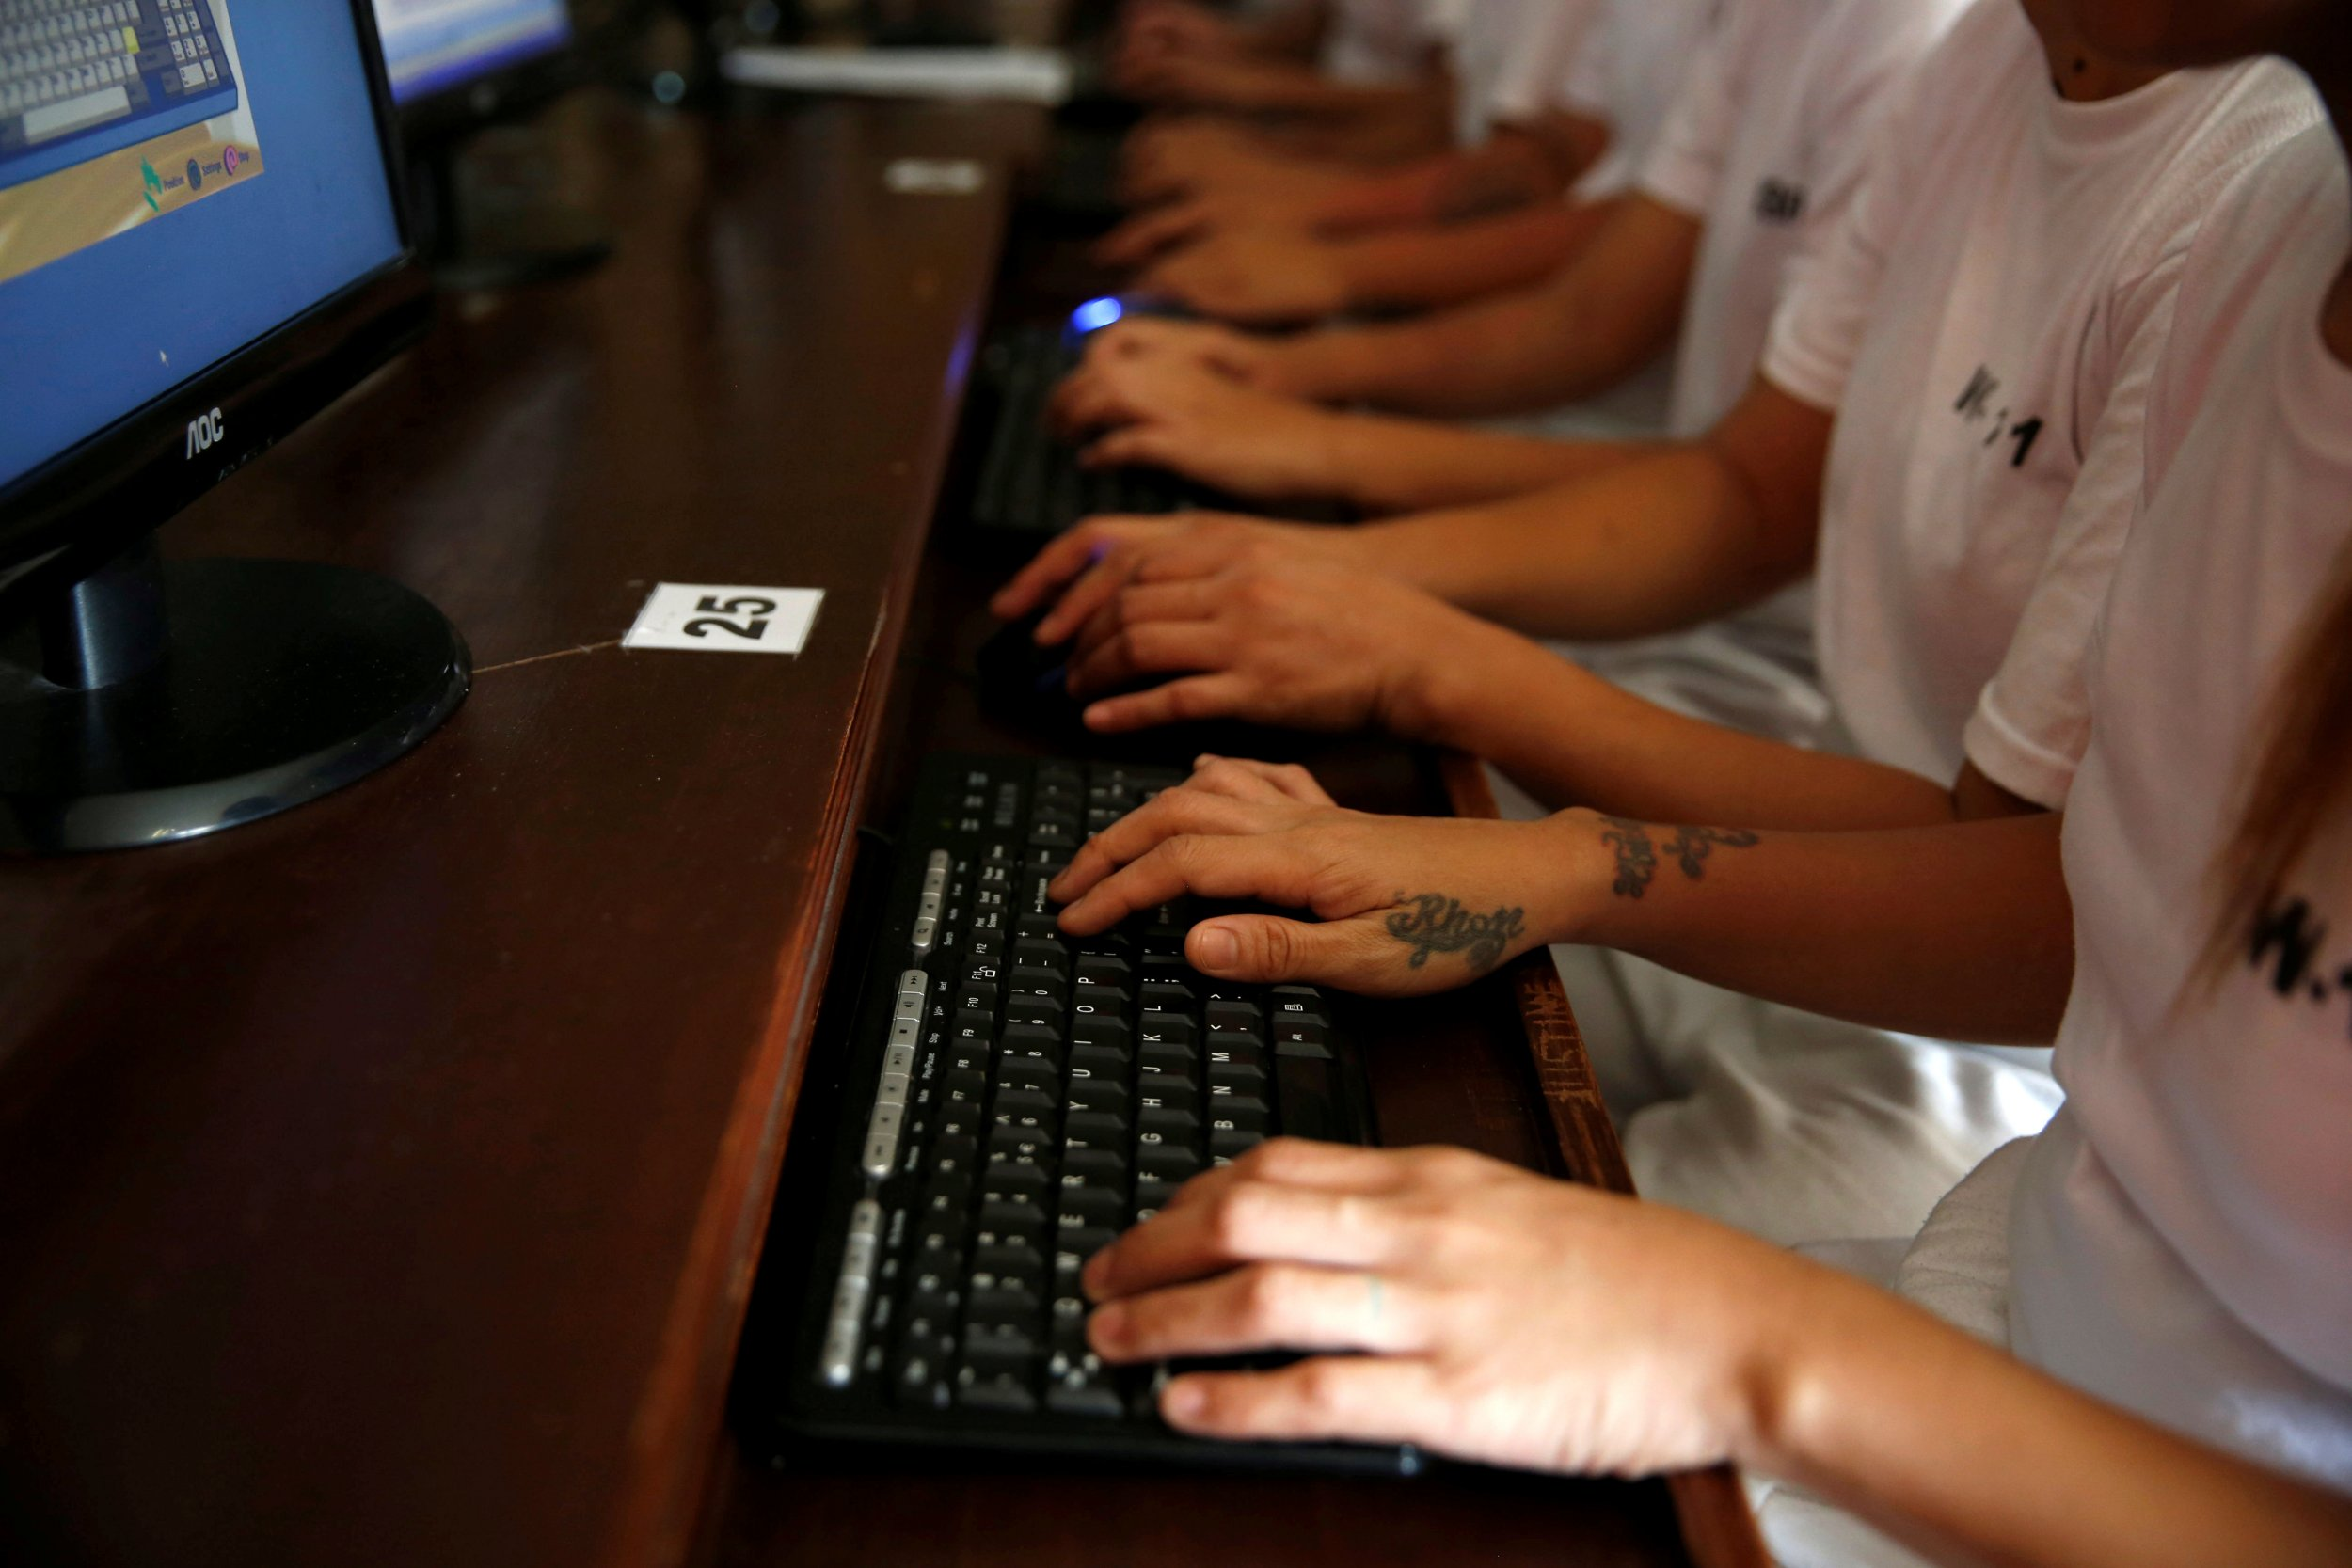 Drug users typing on computers